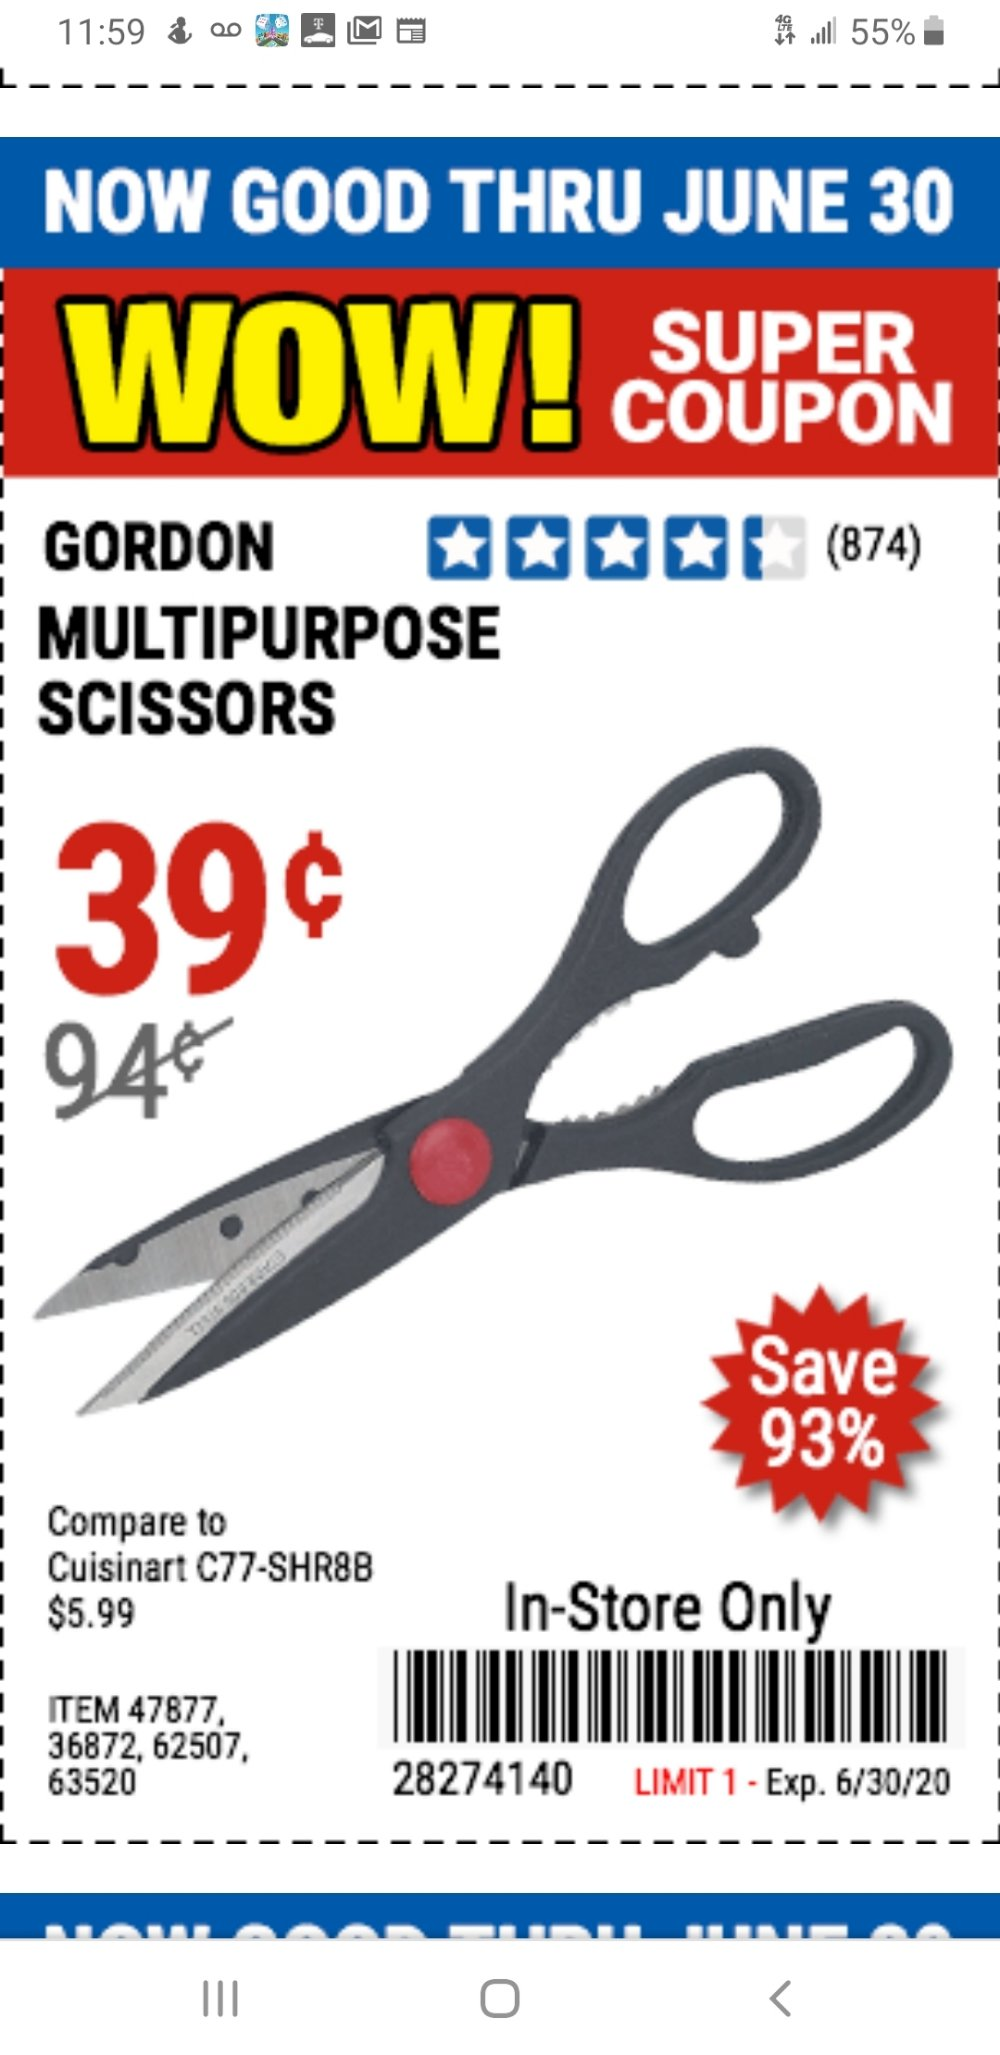 Harbor Freight Coupon, HF Coupons - scissors